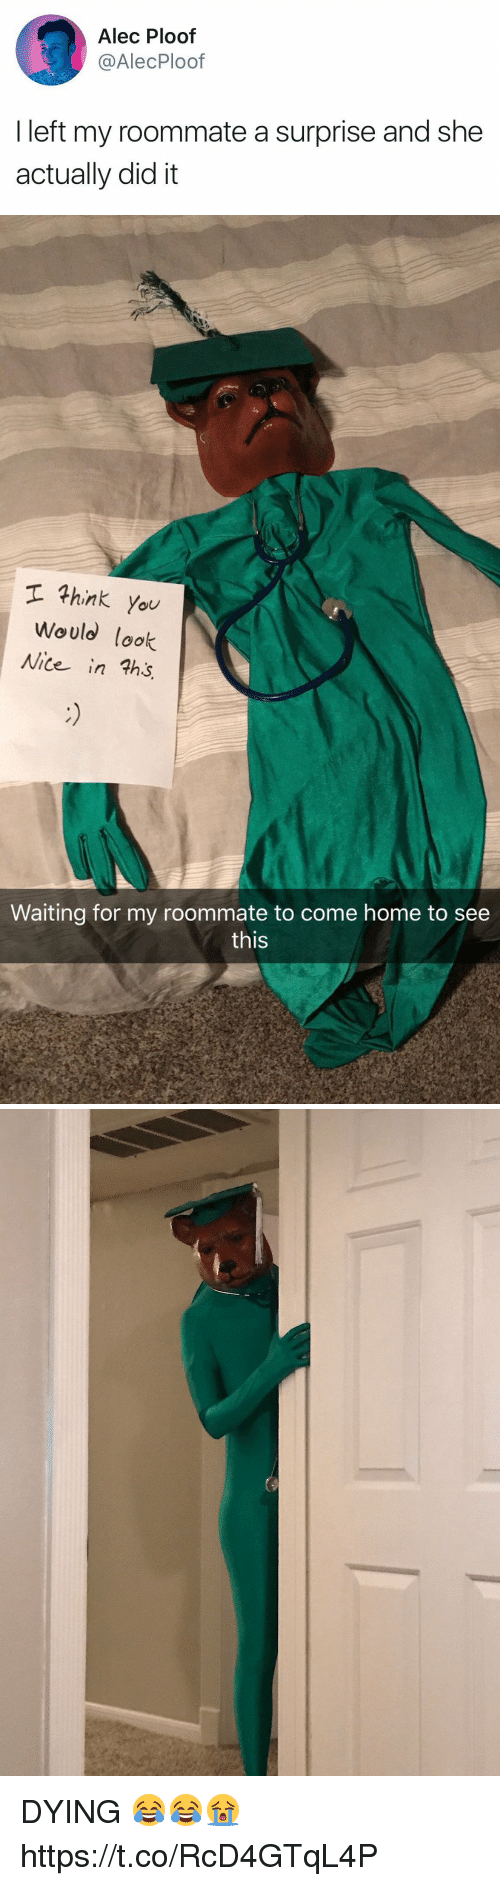 Roommate, Home, and Girl Memes: Alec Ploof  @AlecPloof  I left my roommate a surprise and she  actually did it   hink you  Would look  Nite in ths  Waiting for my roommate to come home to see  this DYING 😂😂😭 https://t.co/RcD4GTqL4P